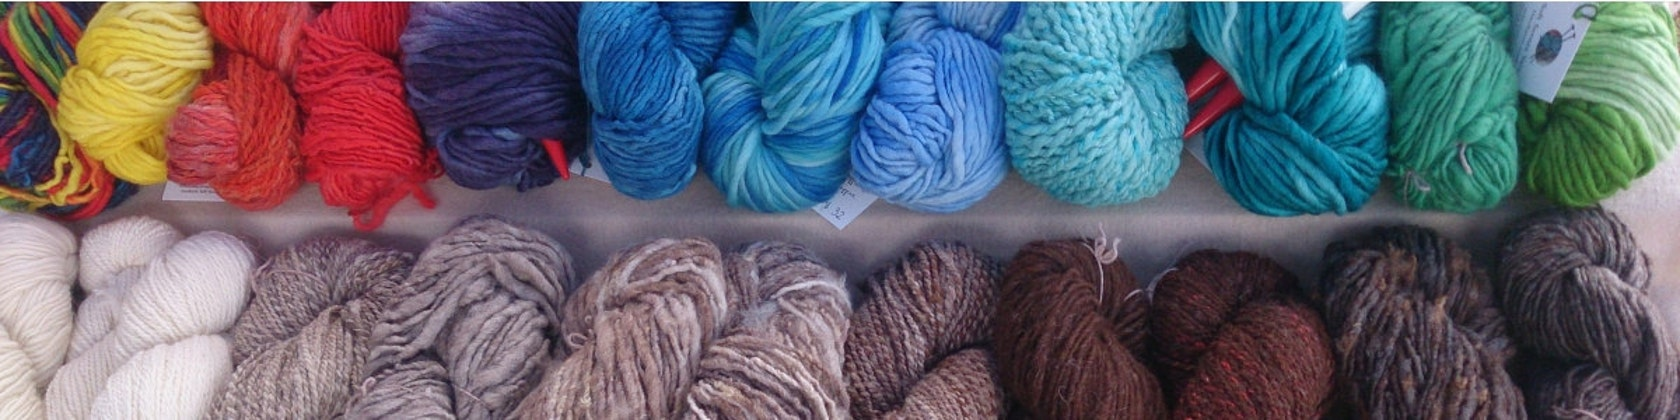 50g aiguille feutrage//Hand Spinning Turquoise laine mérinos Fibre Roving Tops